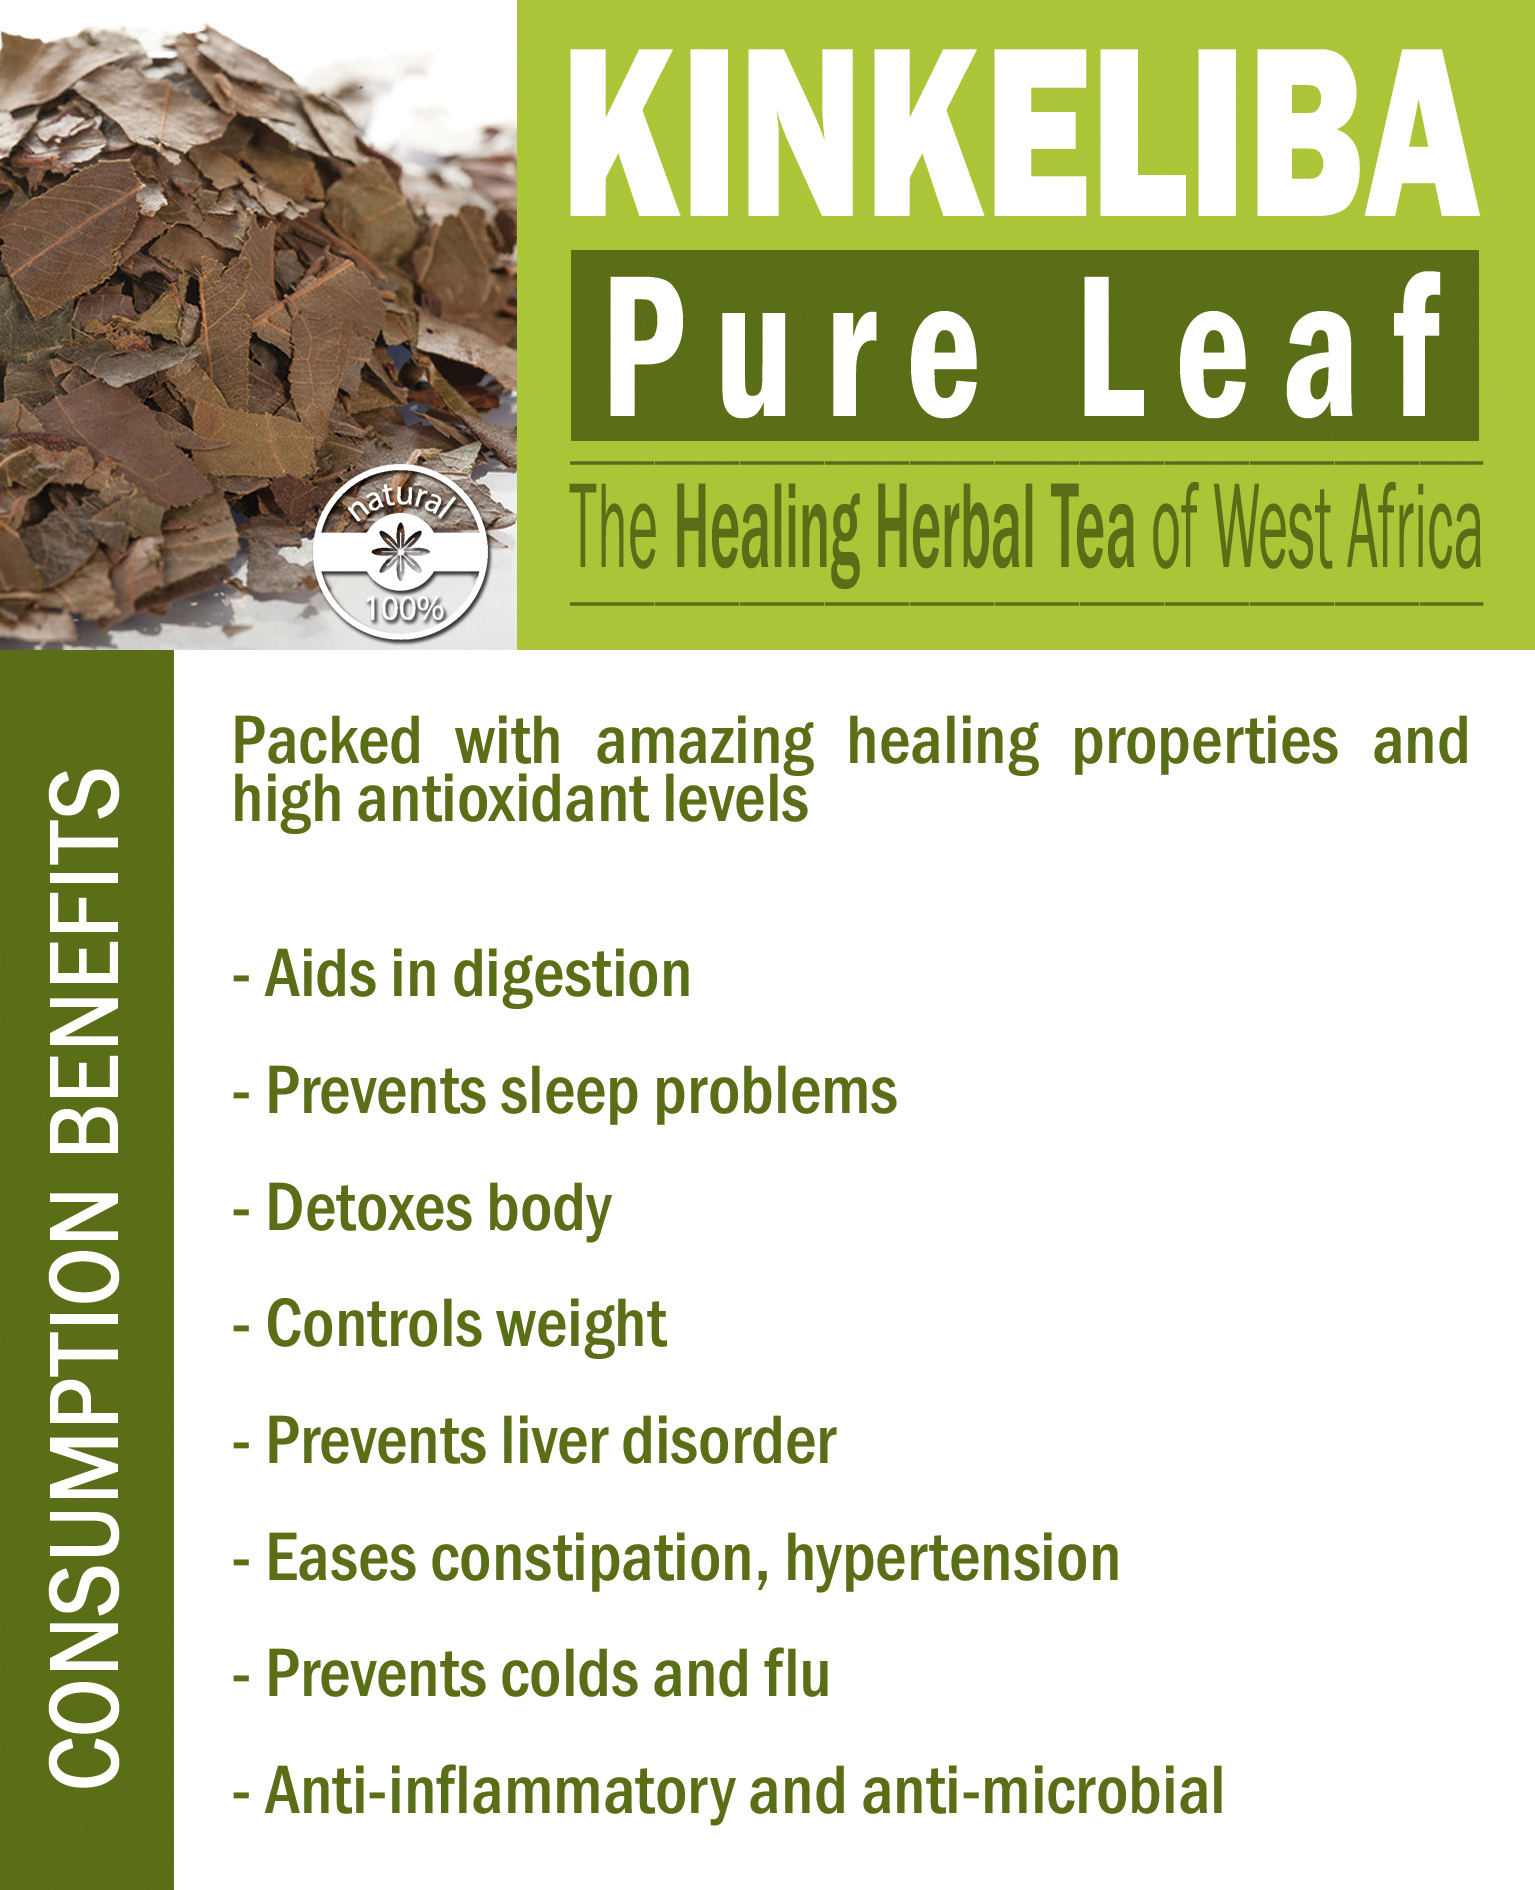 Kinkeliba Pure Leaf Benefits